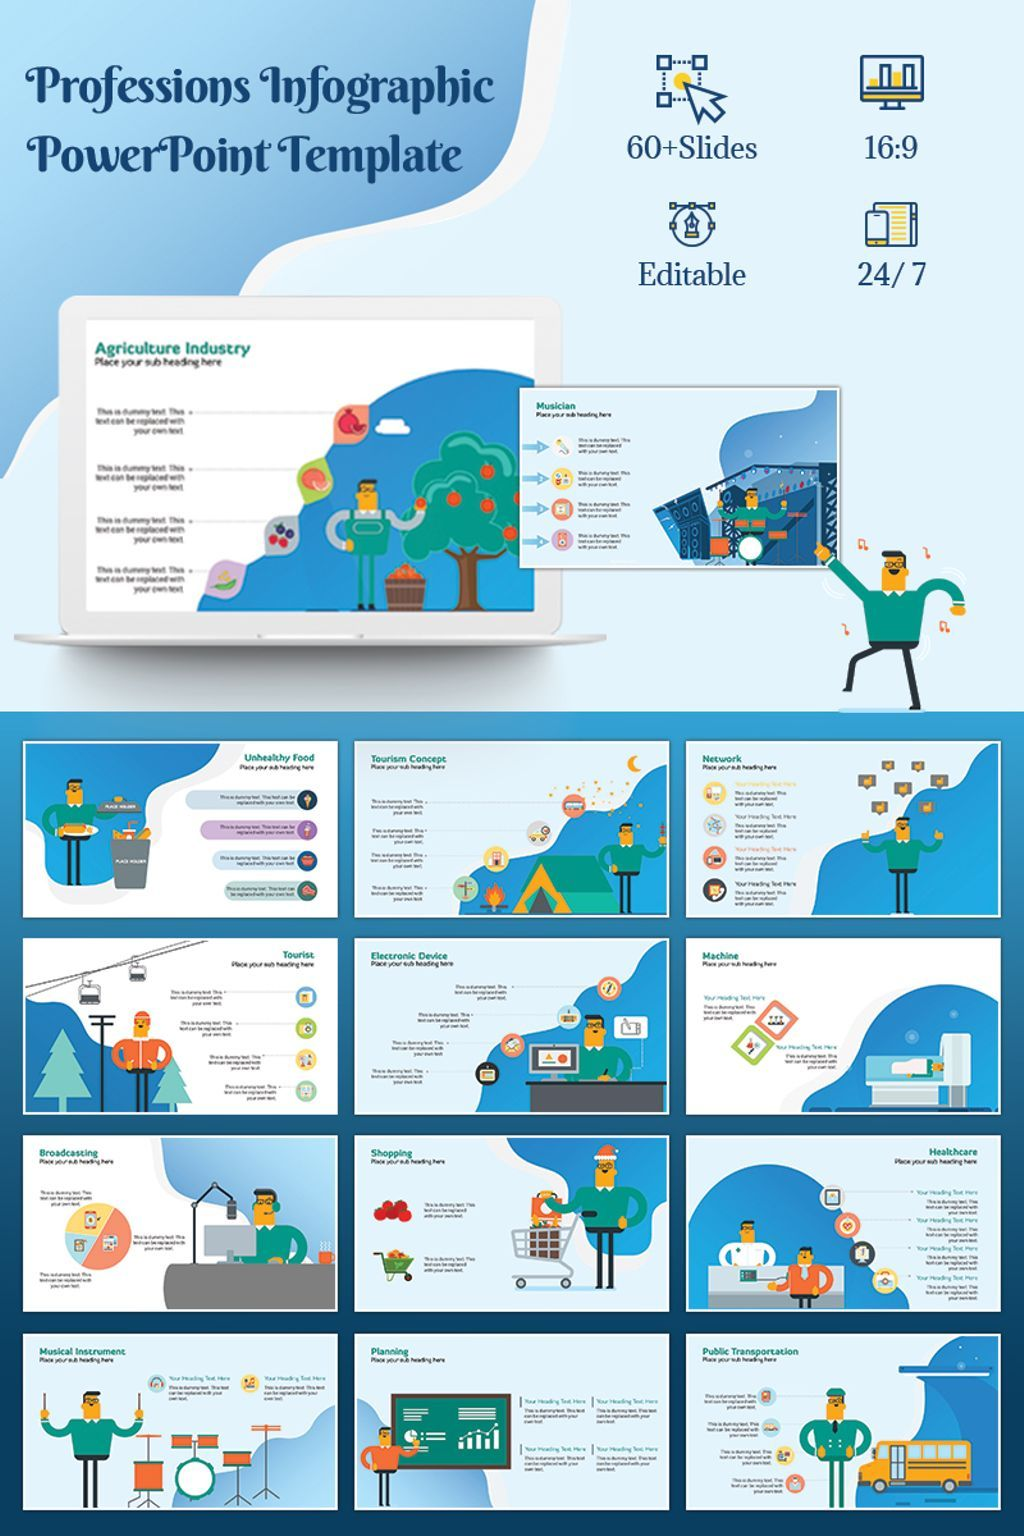 professions infographic powerpoint template new website templates